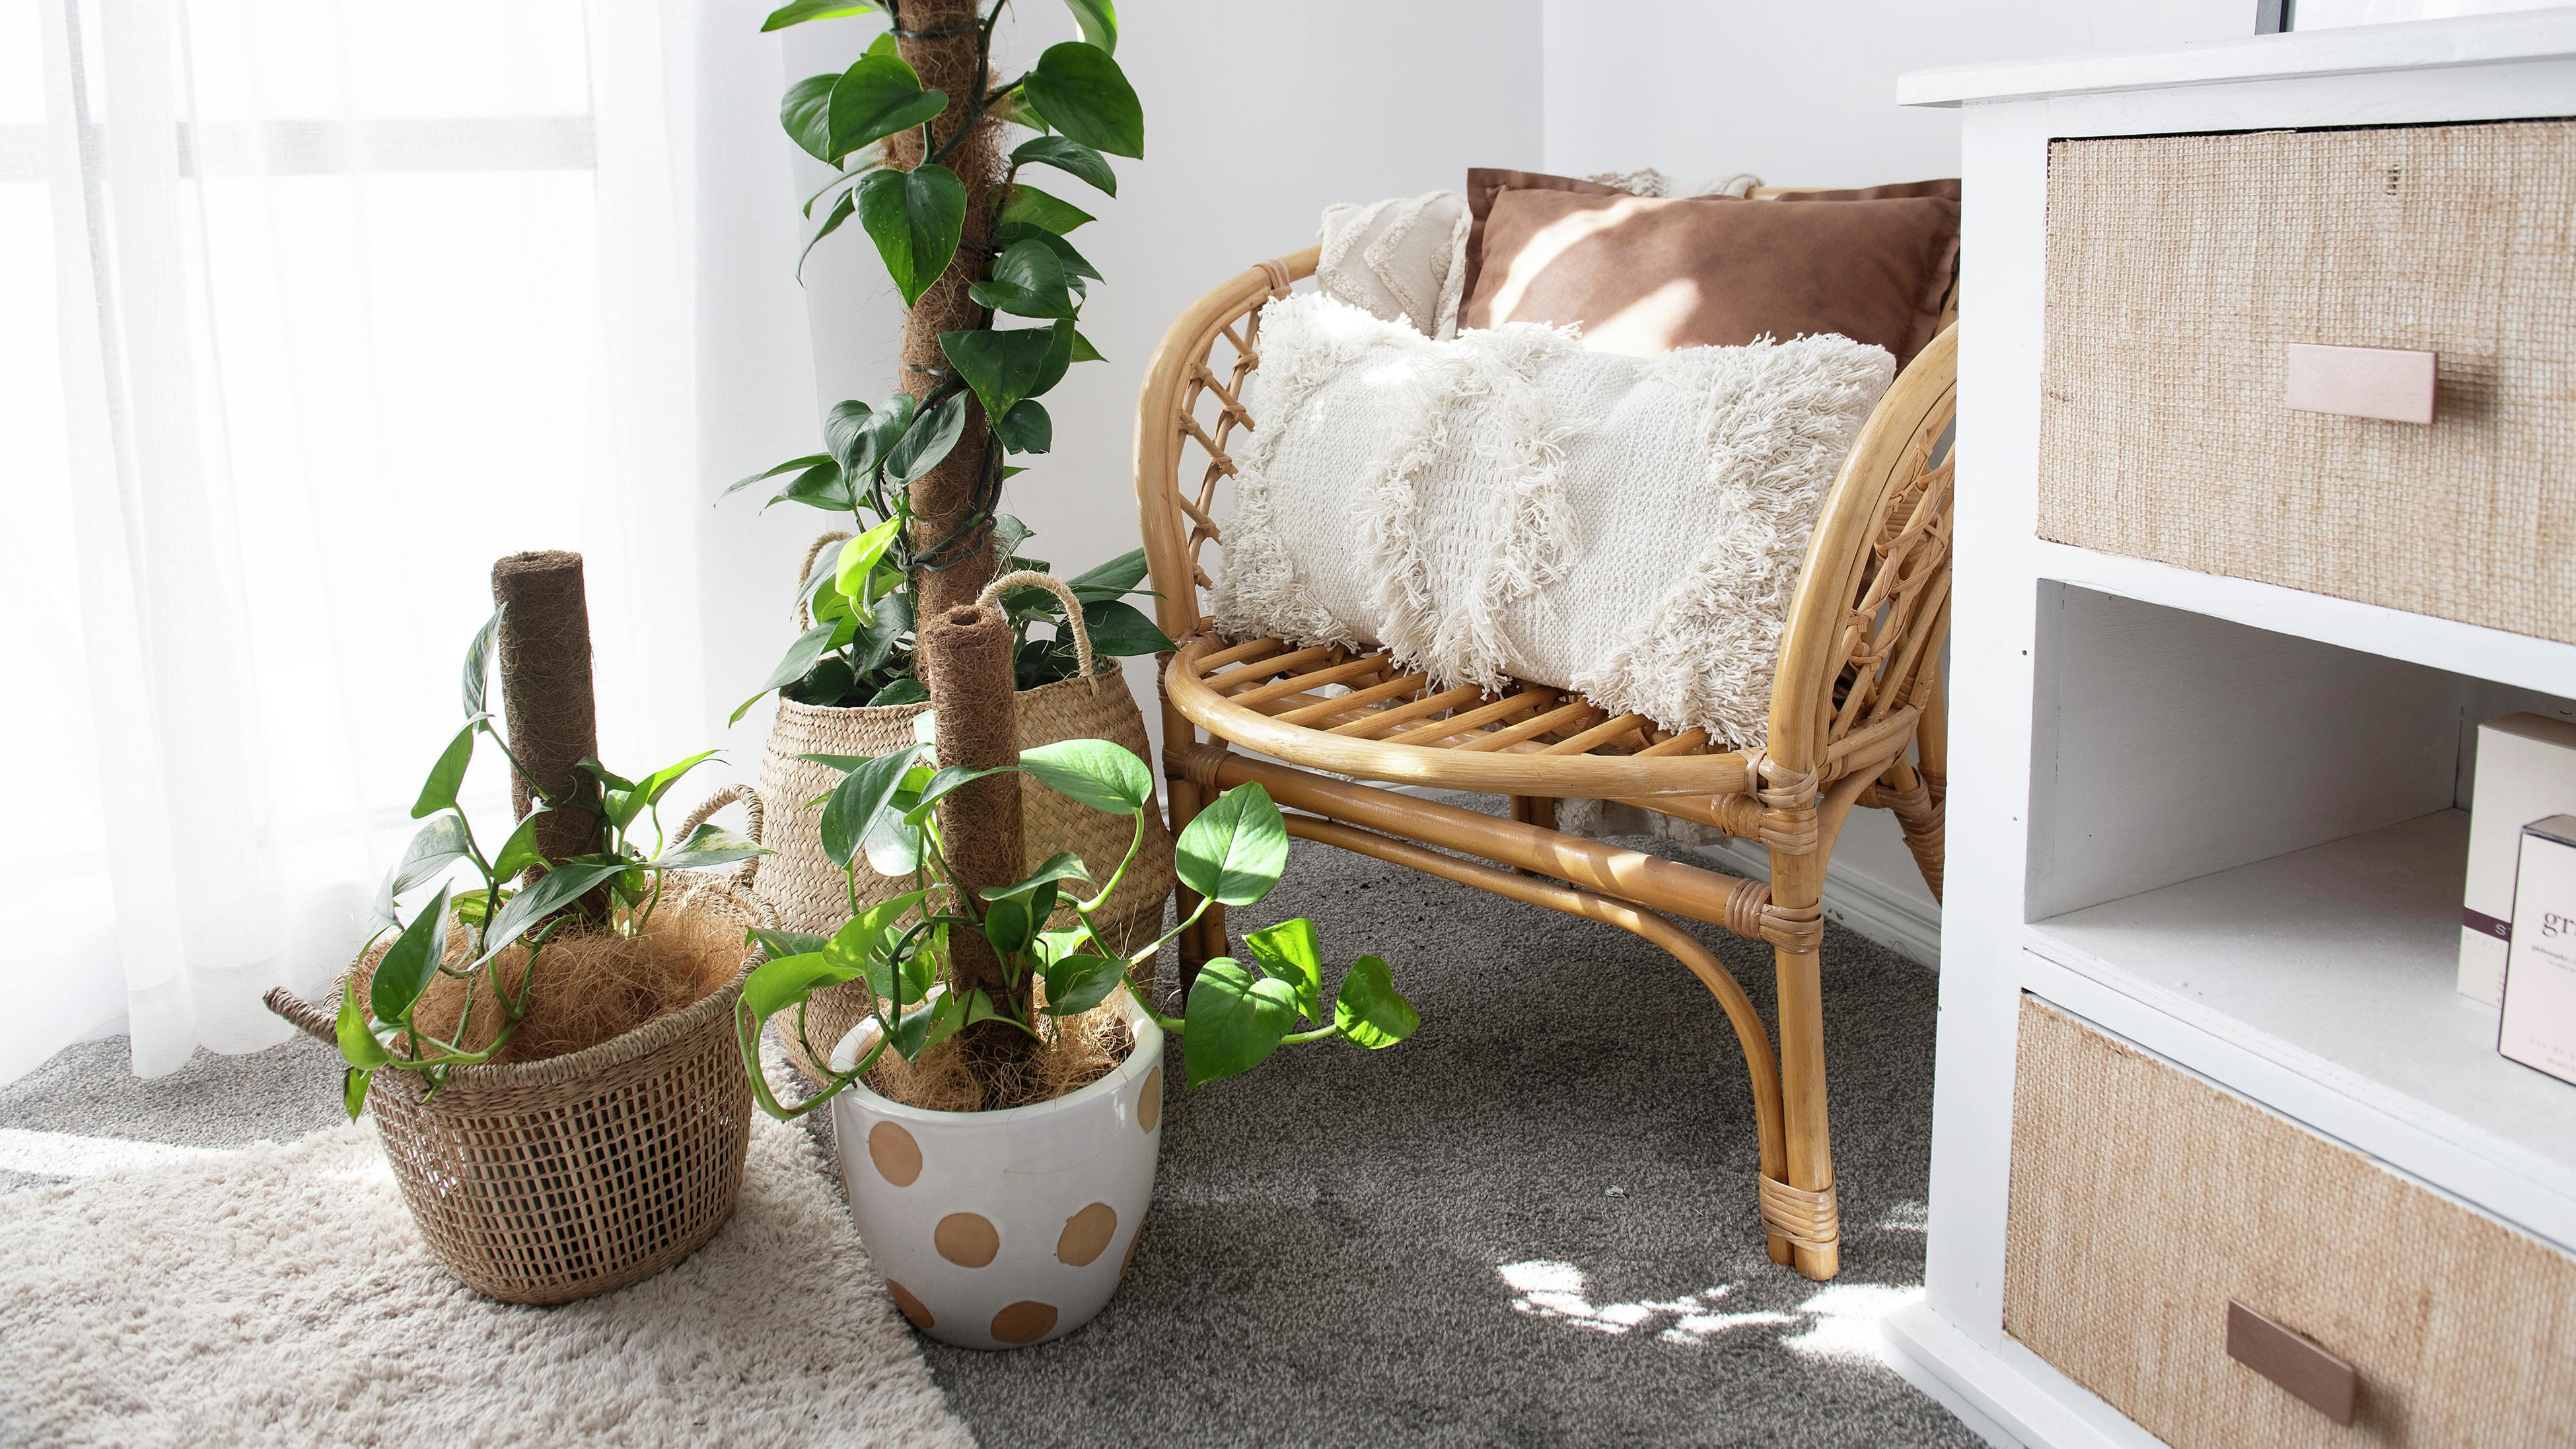 A potted devil's ivy plant in a living room setting